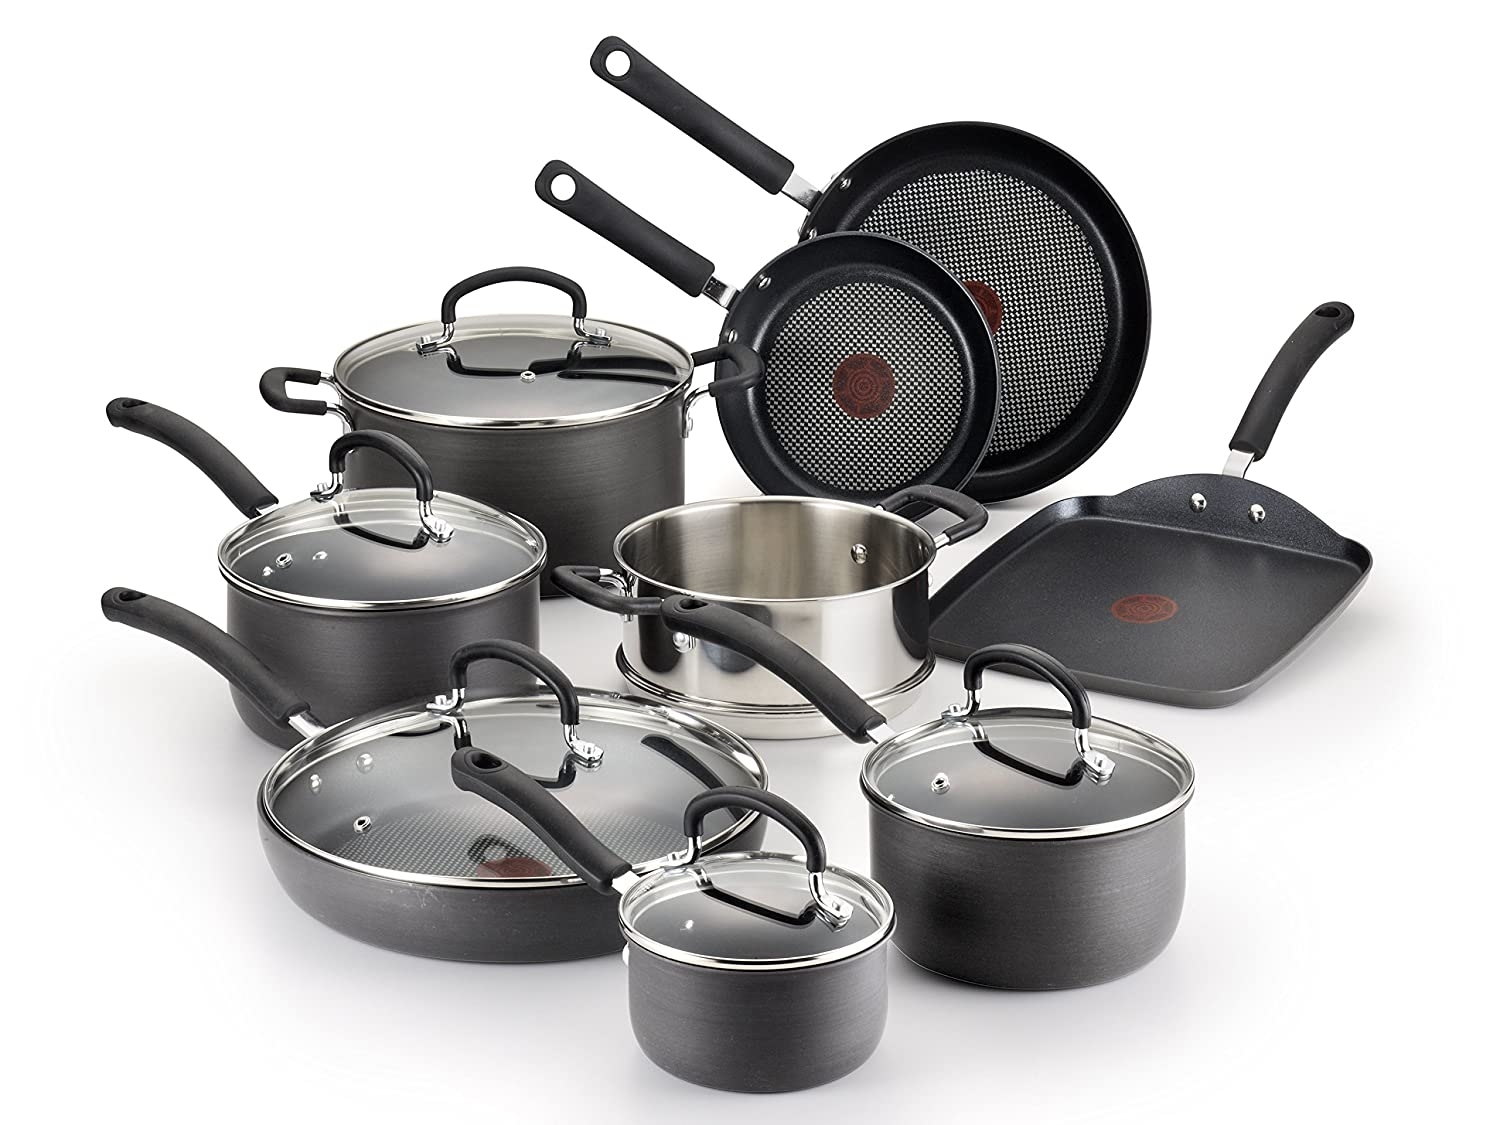 T-fal E765SC Ultimate Hard Anodized Scratch Resistant Titanium Nonstick Thermo-Spot Heat Indicator Anti-Warp Base Dishwasher Safe Oven Safe PFOA Free Cookware Set, 12-Piece, Gray Groupe SEB 2100093959